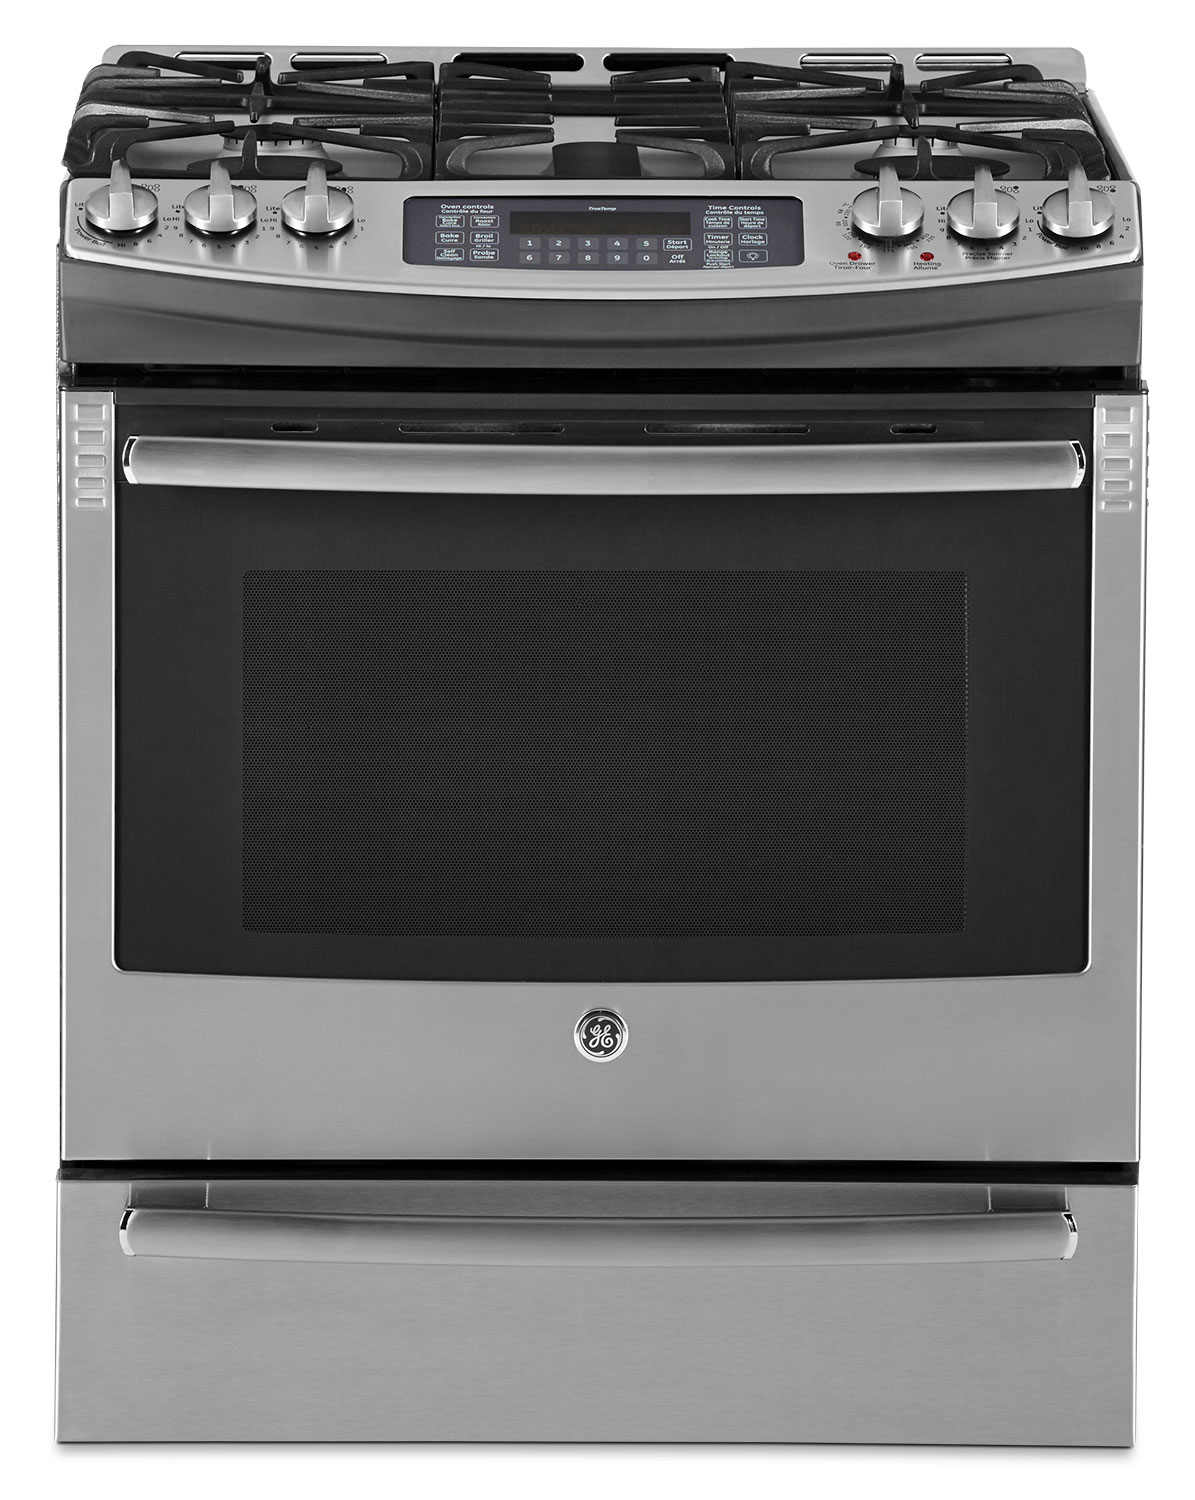 GE 6.4 Cu. Ft. Slide-In Gas Range with Baking Drawer – PCGS910SEFSS